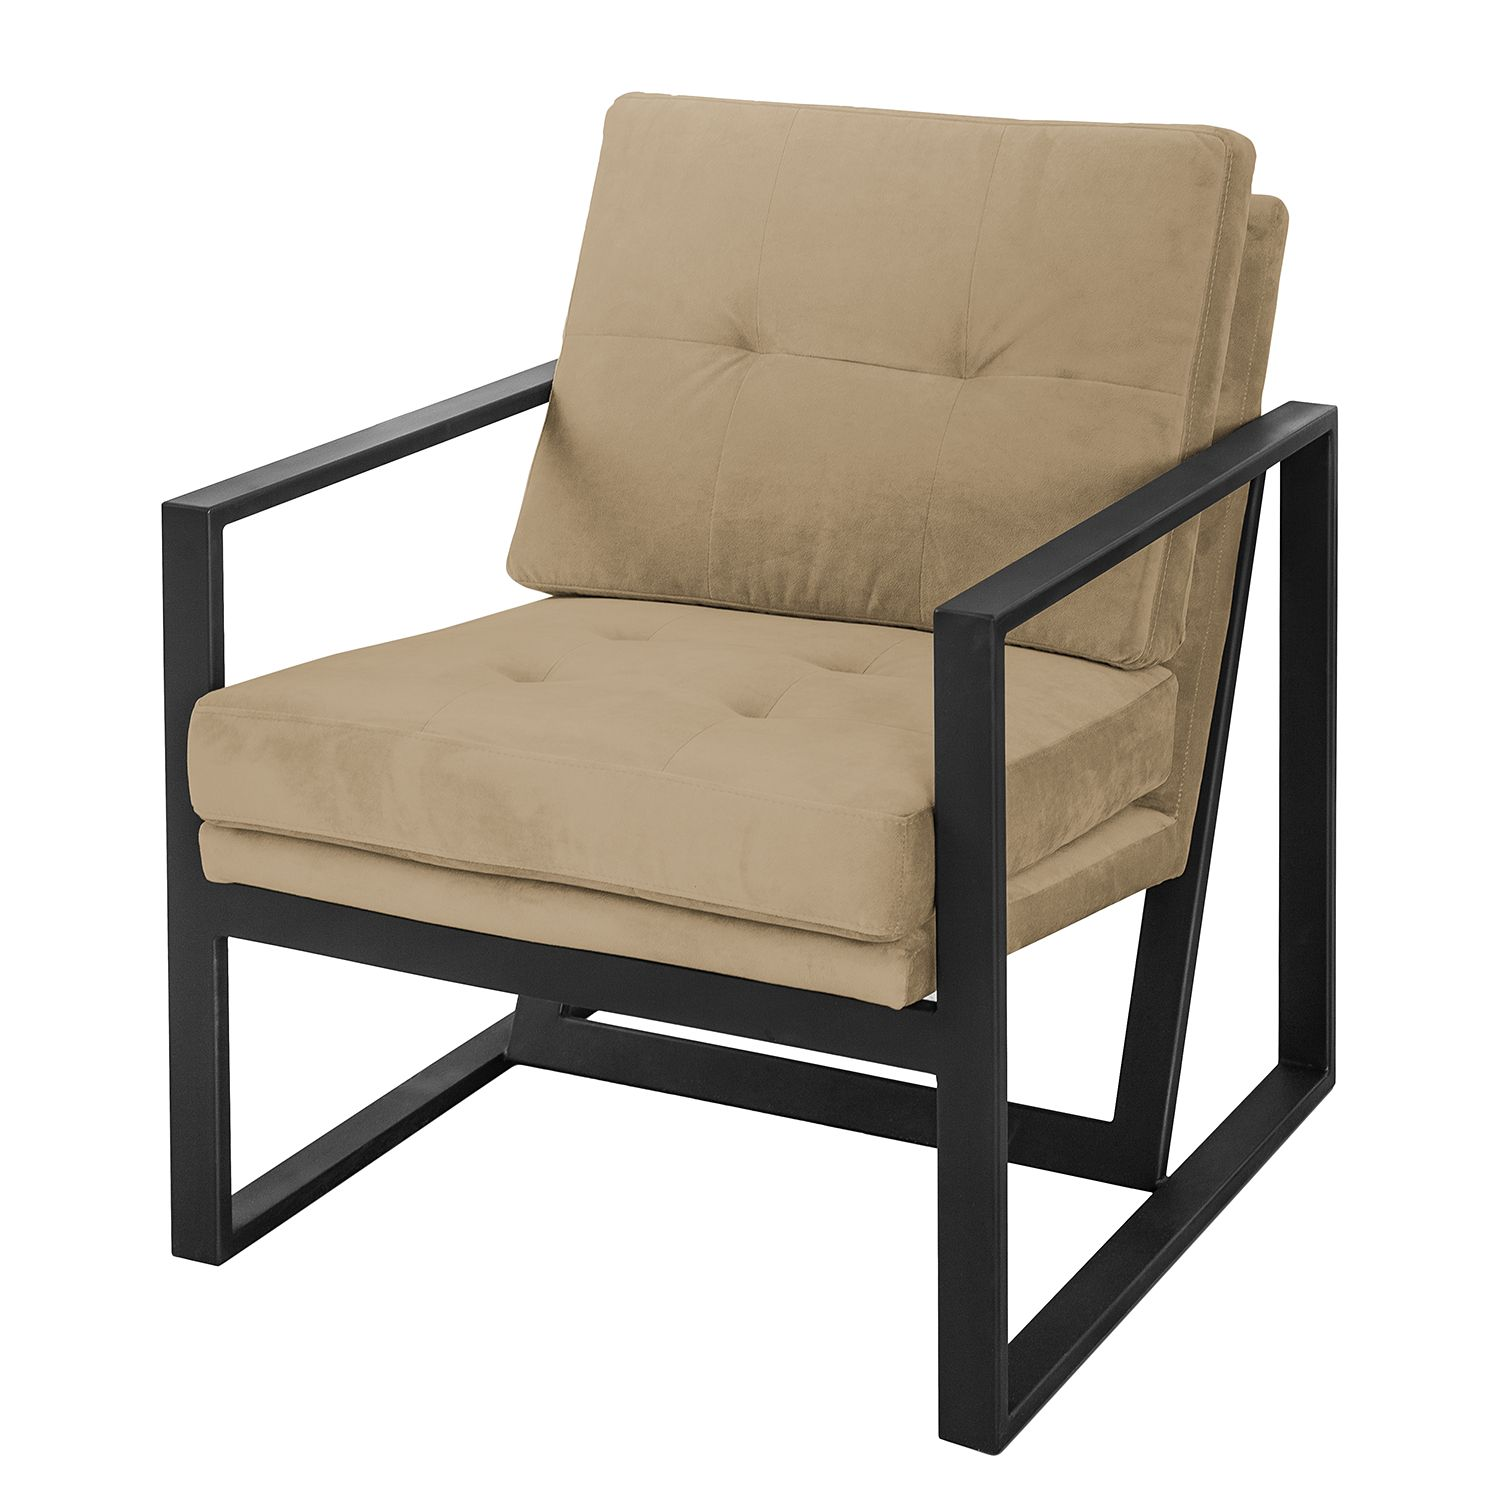 Fauteuil Brock I - Velours - Cappuccino, ars manufacti